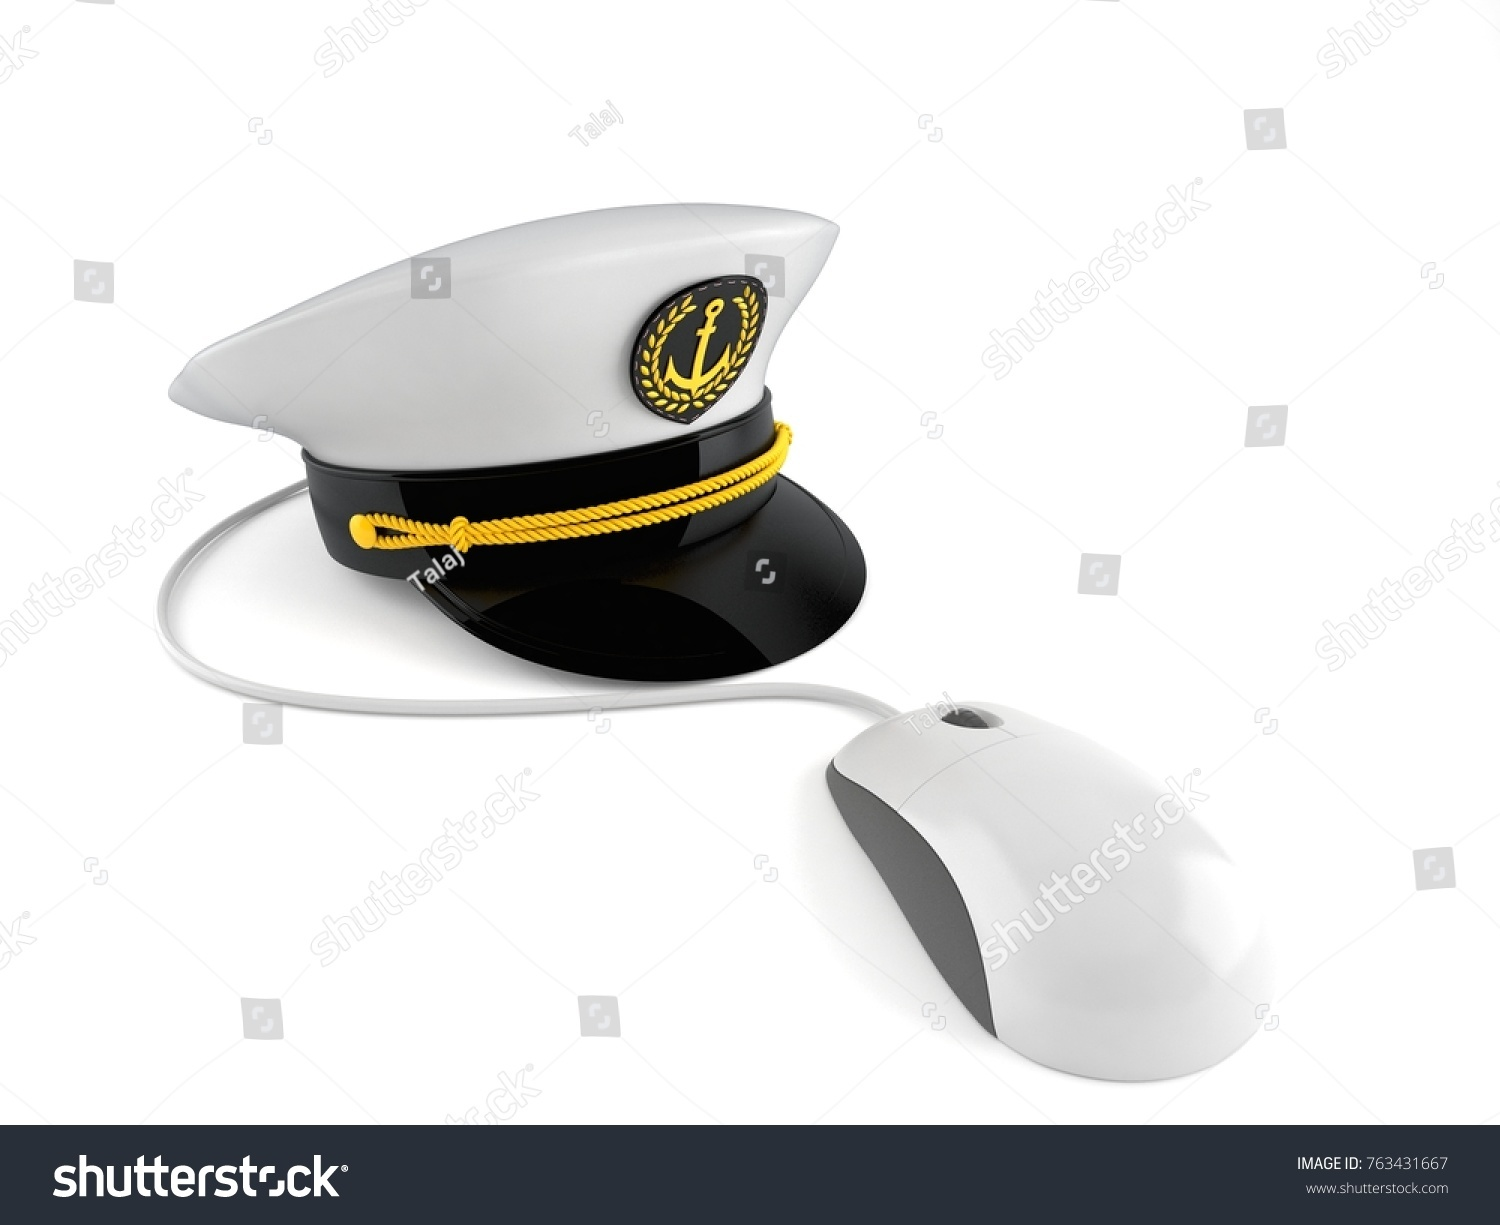 ede9bf645a4 Captain s hat with computer mouse isolated on white background. 3d  illustration